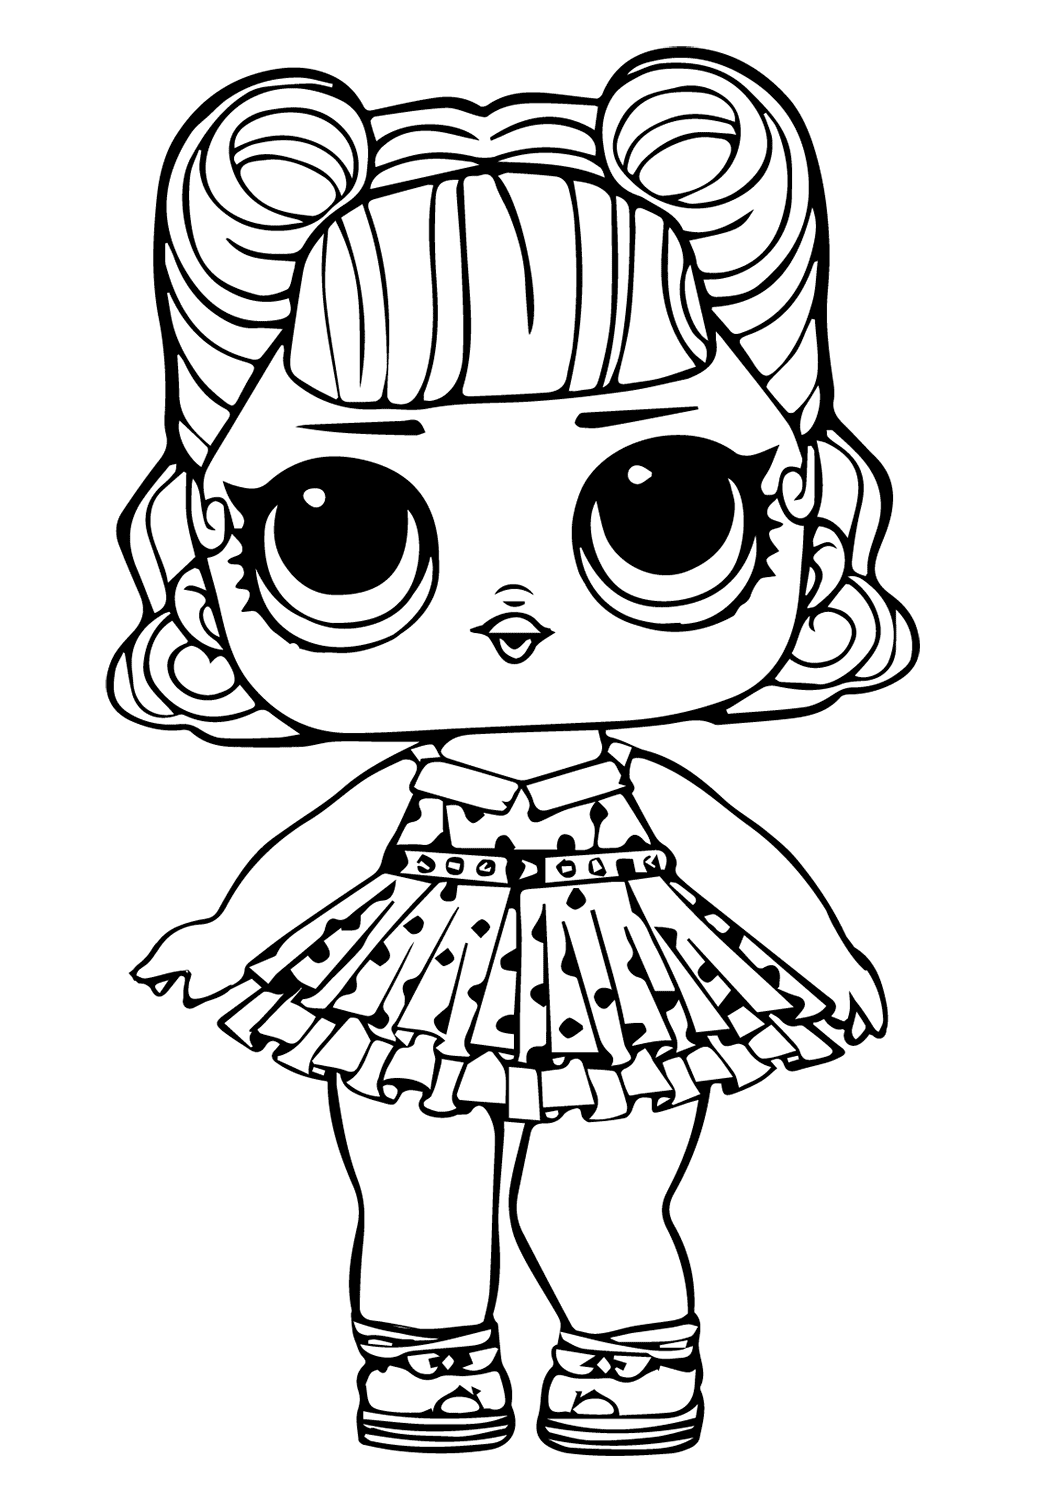 coloring template printable lol colouring pages lol dolls coloring pages at getcoloringscom free coloring pages lol template colouring printable